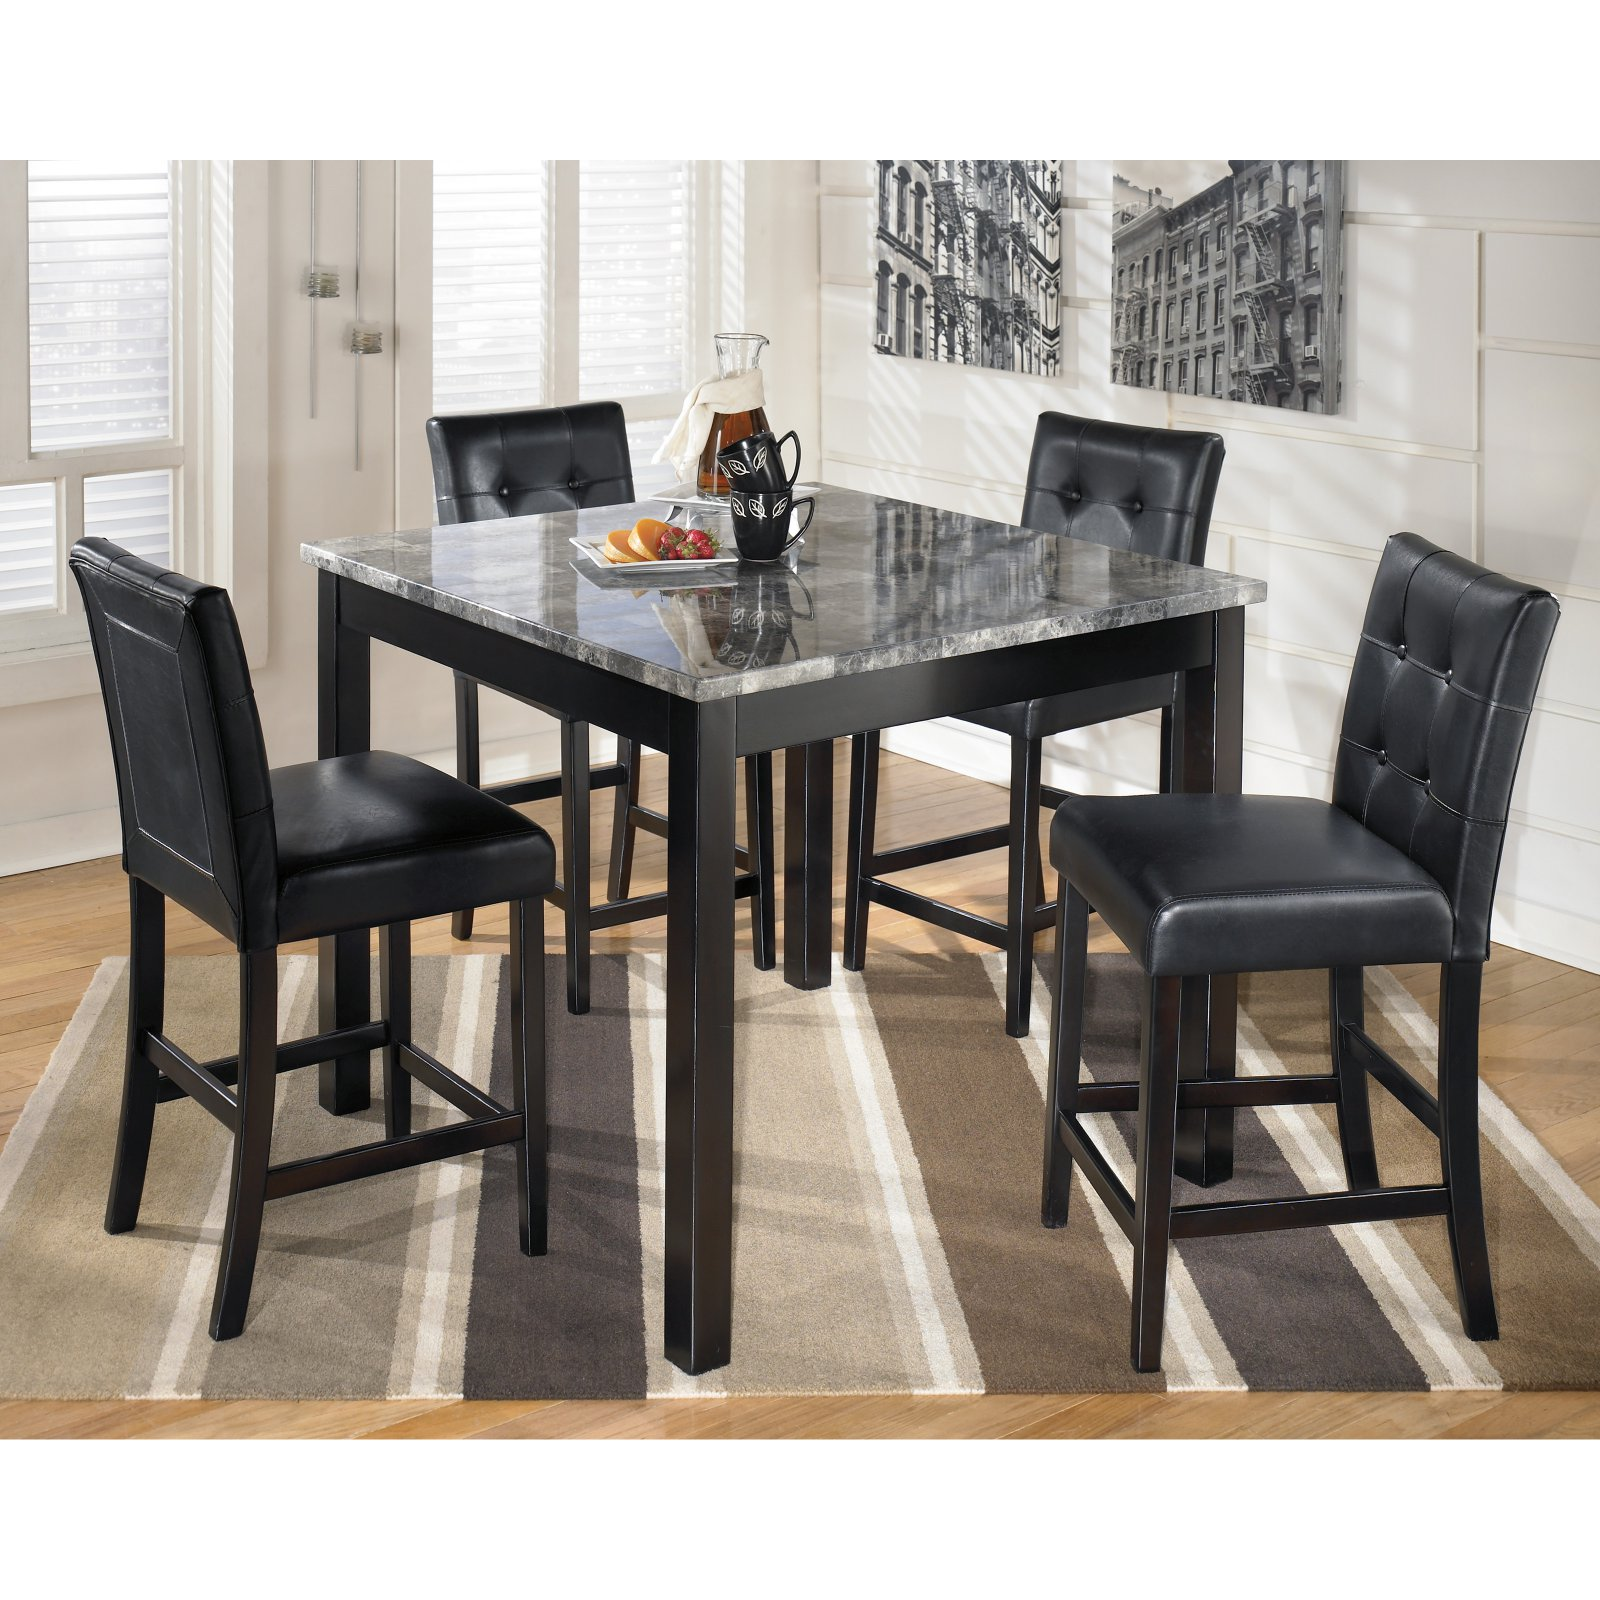 Signature Design By Ashley Maysville 5 Piece Counter Height Dining Table Set Part 69